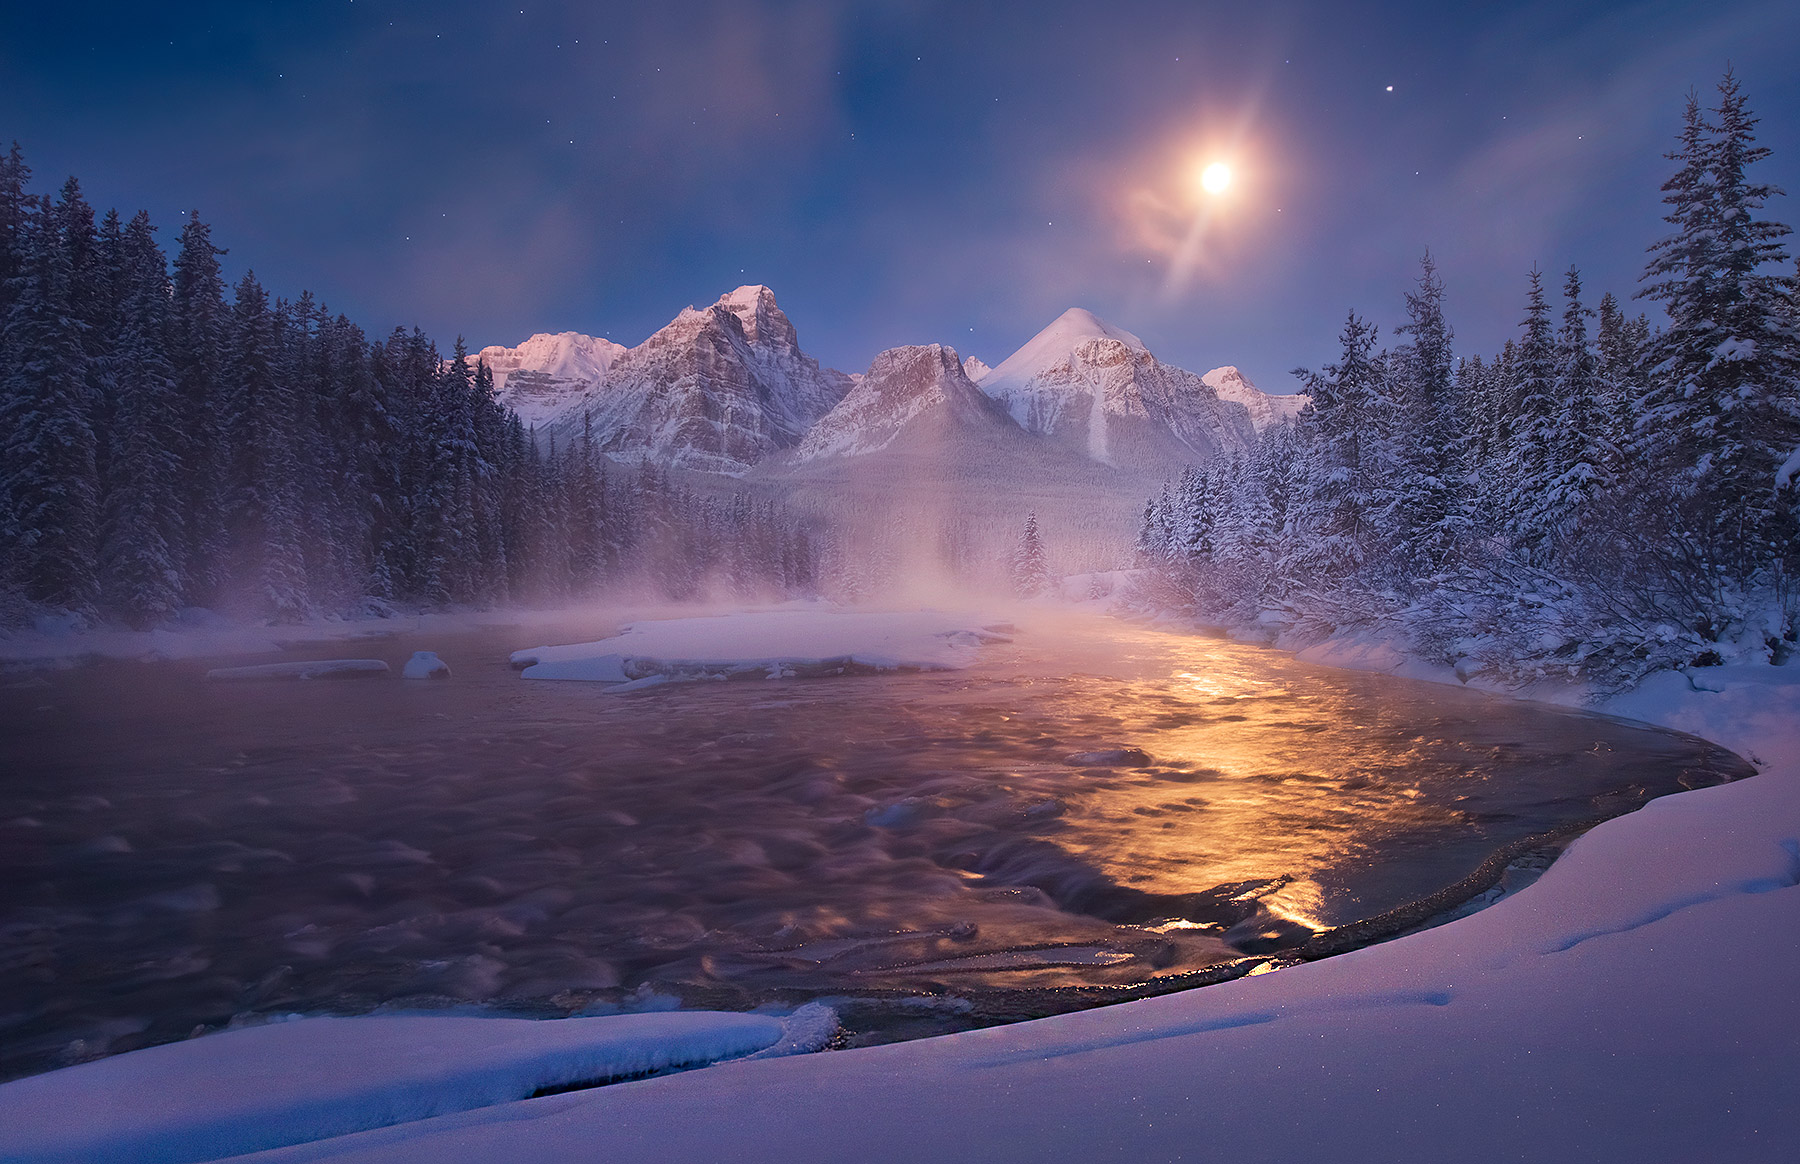 Canadian Rockies, Moon, Moonlight, Mists, River, photo